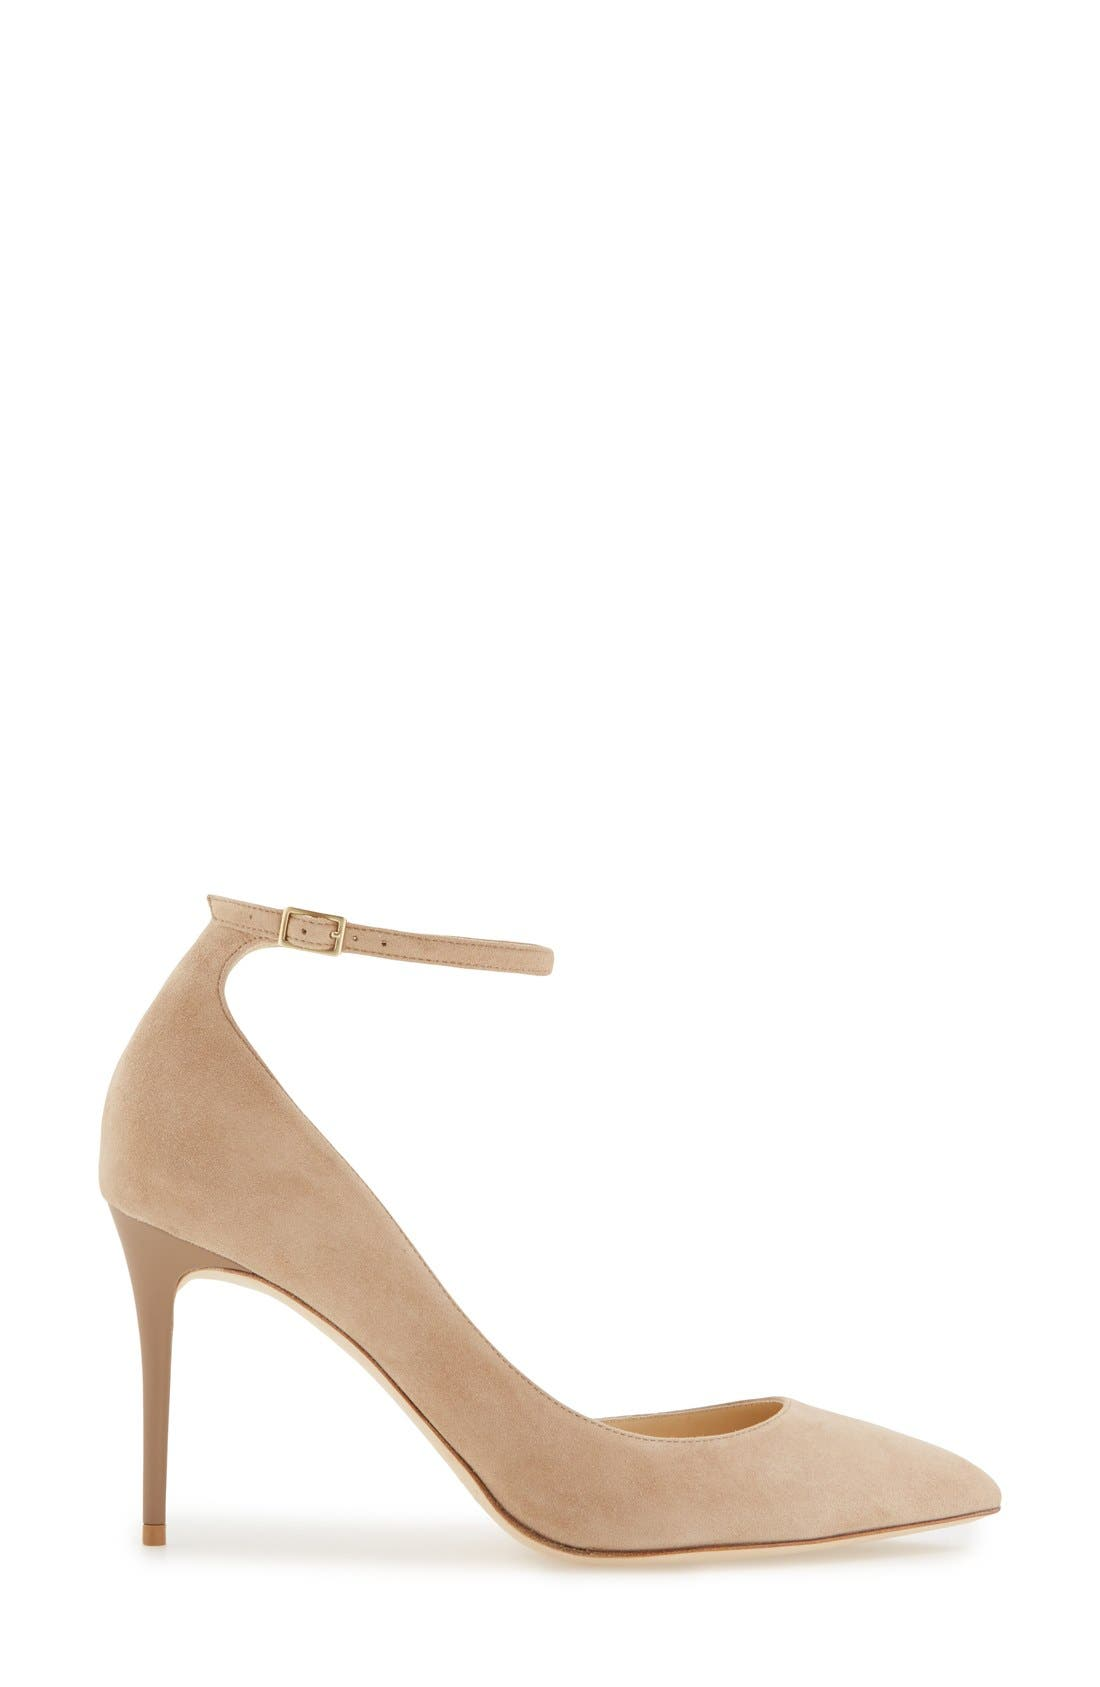 'Lucy' Half d'Orsay Pointy Toe Pump,                             Alternate thumbnail 12, color,